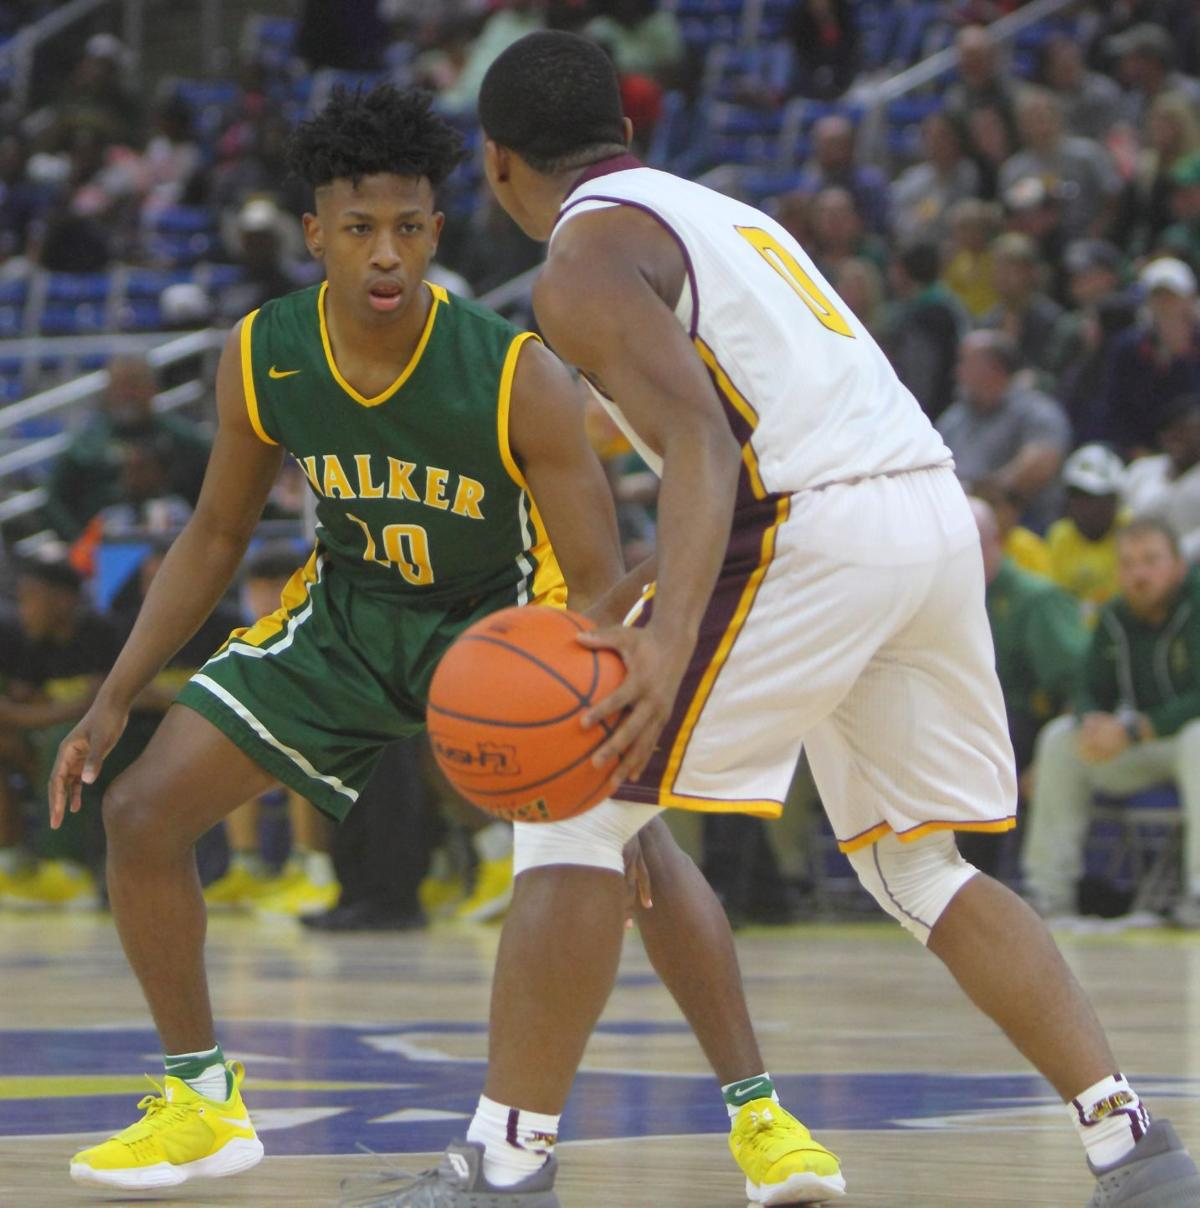 Walker vs. Nacitoches Central semifinal  Qaeshon Clark